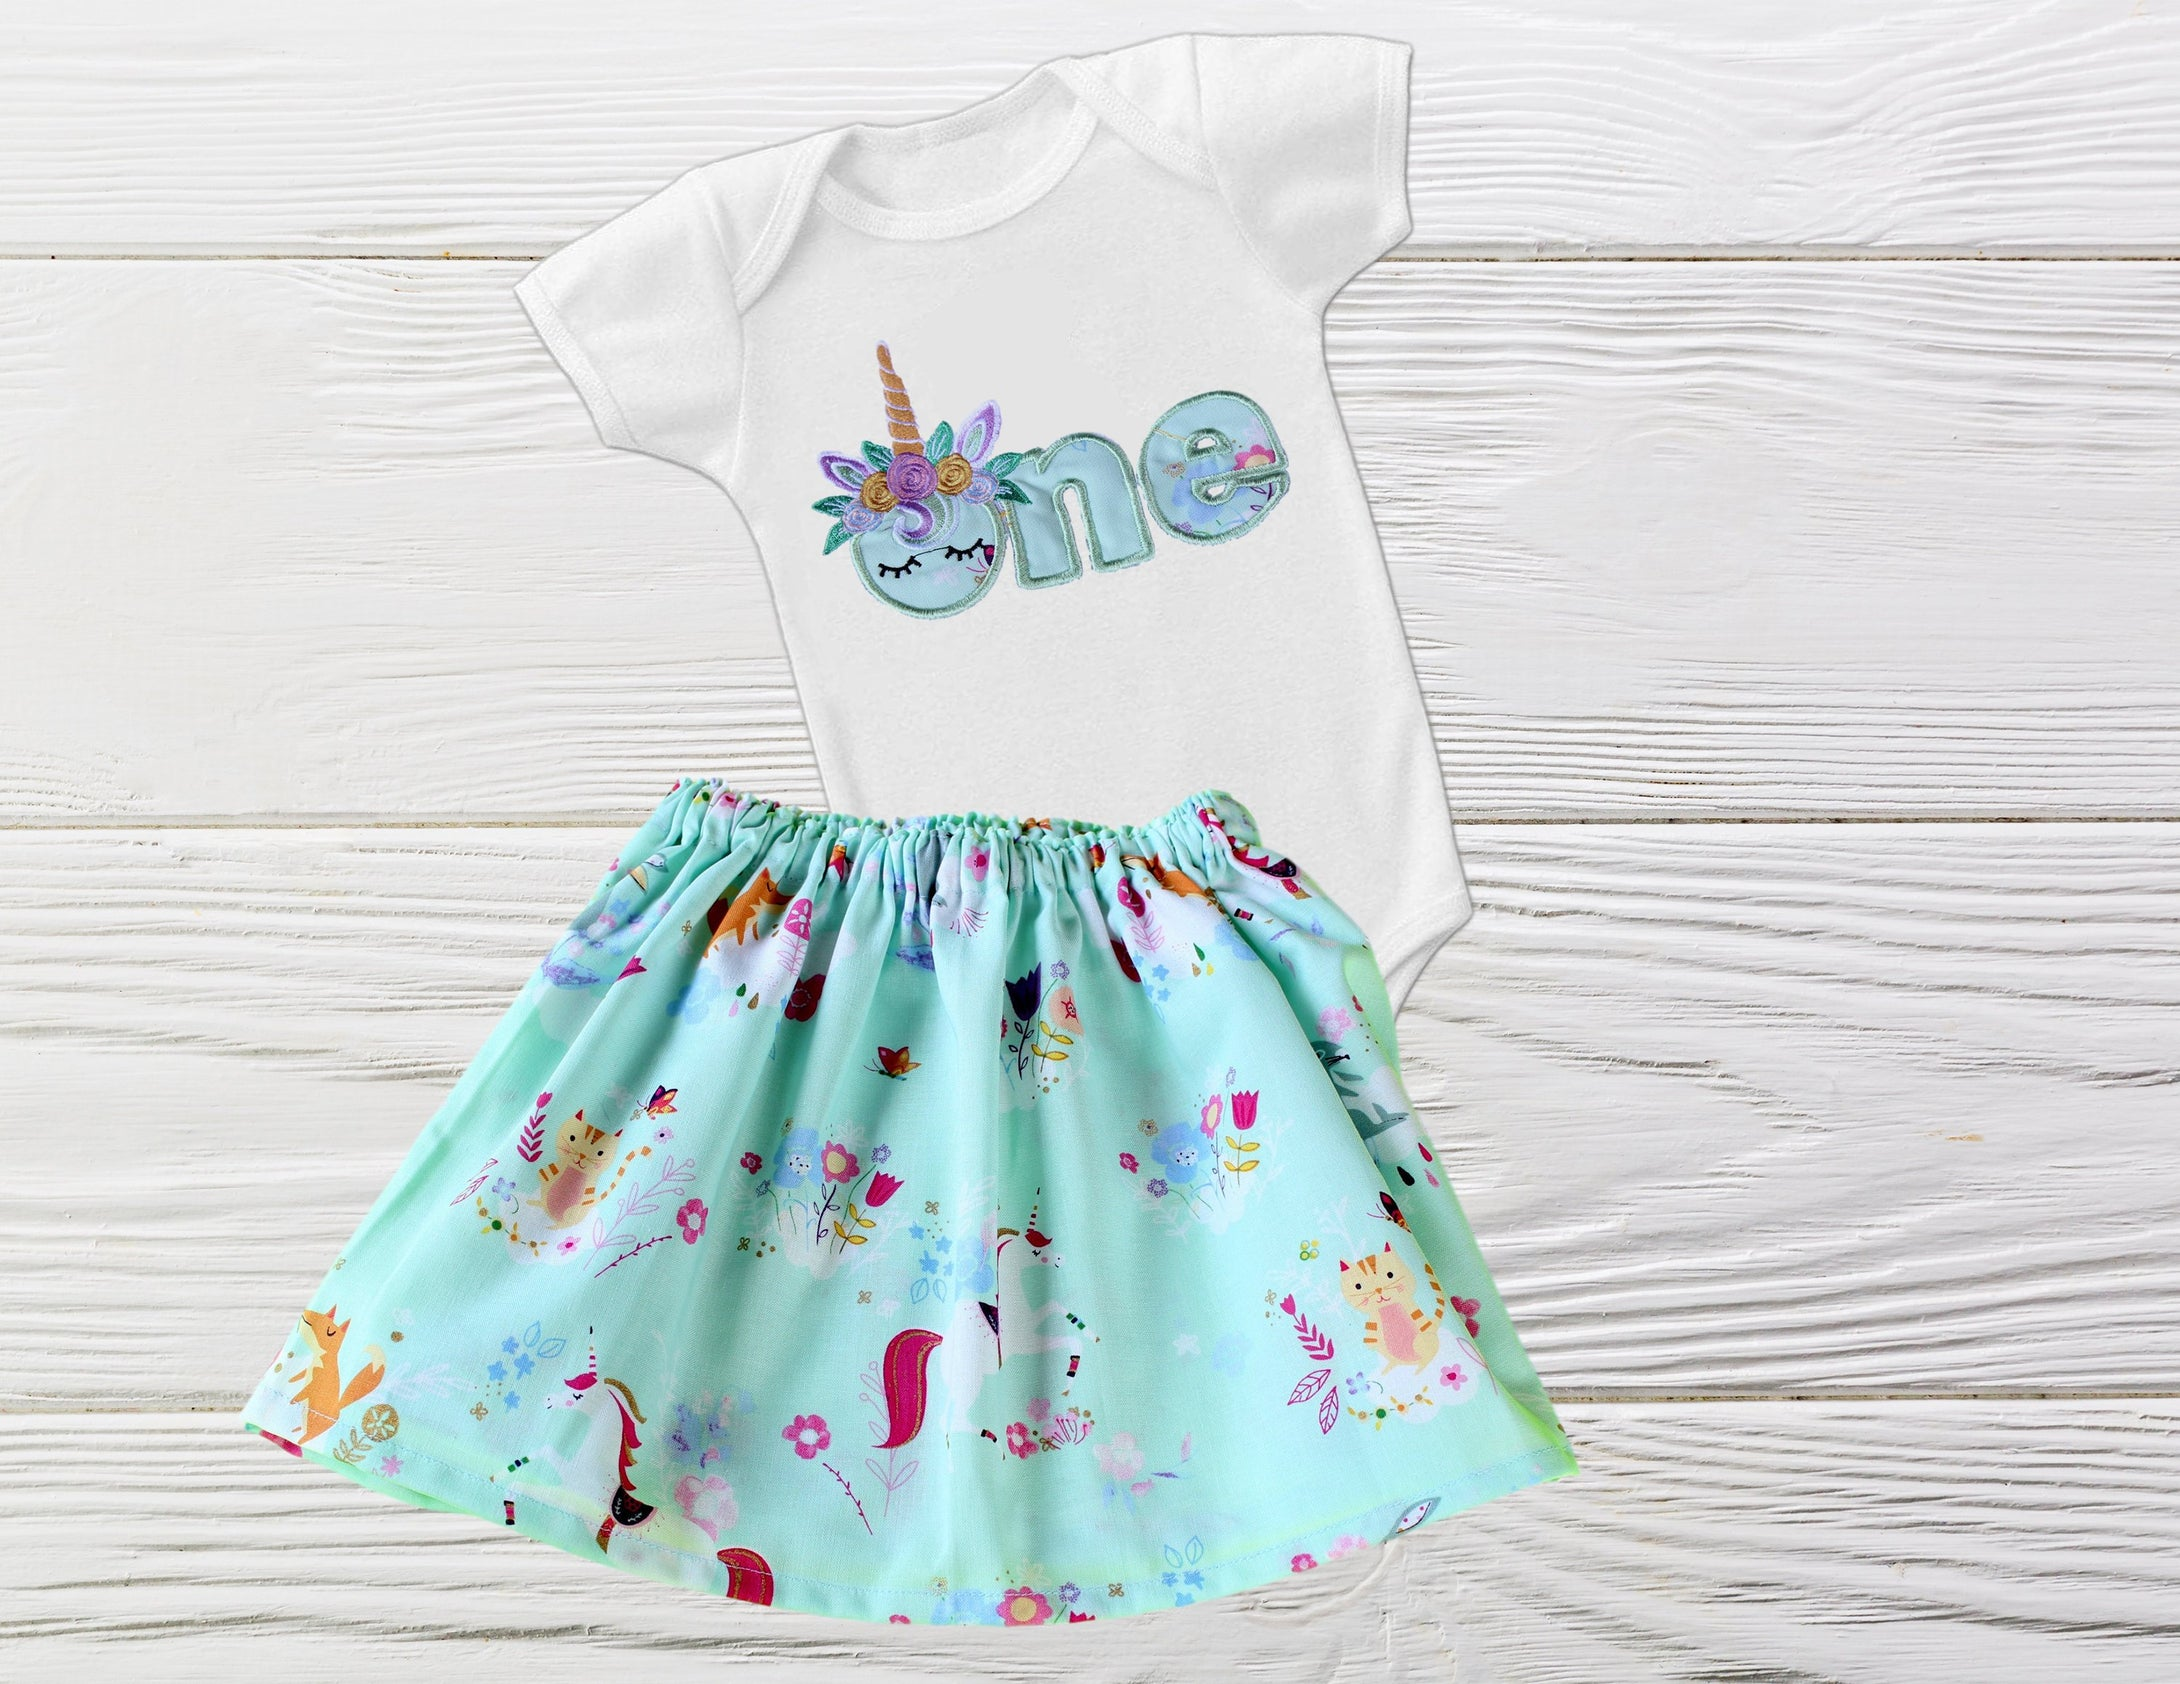 UNICORN FIRST BIRTHDAY. Baby First birthday outfit. Girls Unicorn outfit. First Birthday unicorn outfit